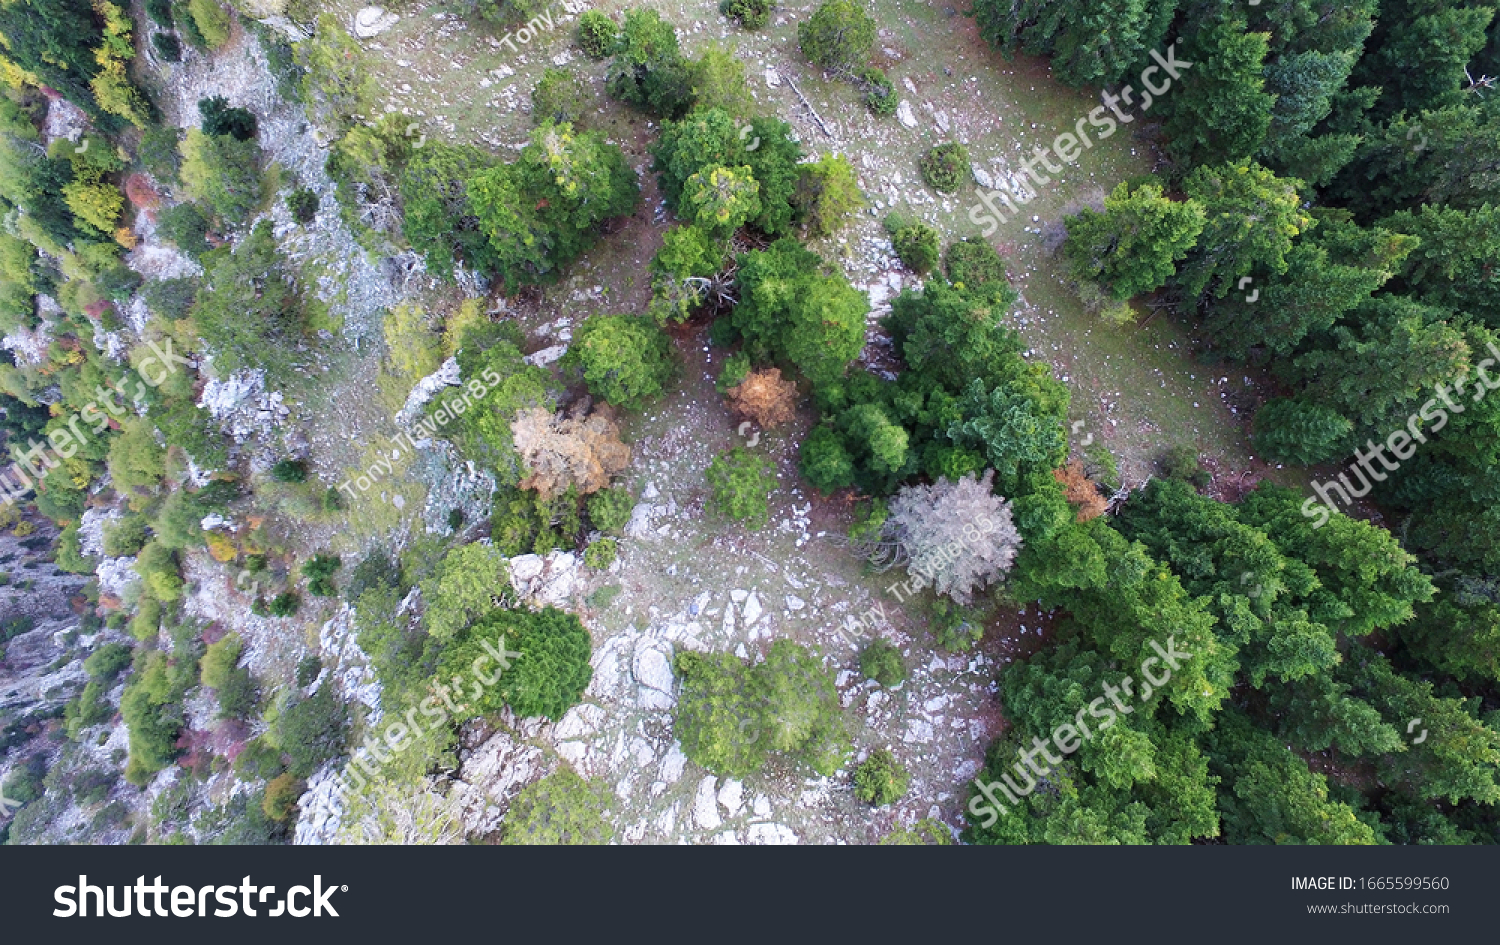 Drone photography of a lush pine forest.